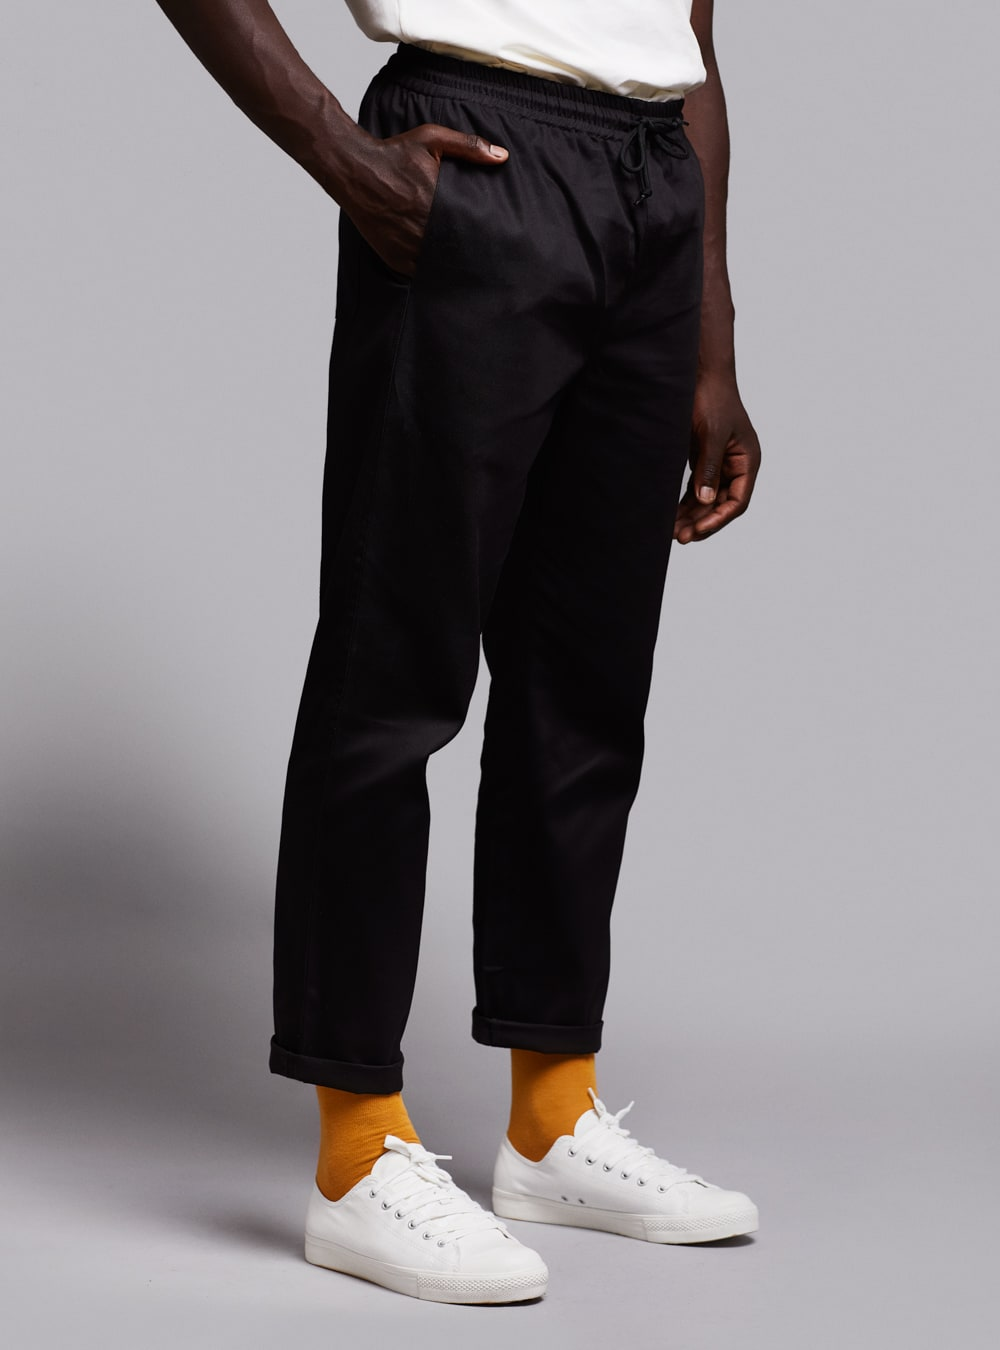 Drawstring trousers (black) in cotton, made in Portugal by wetheknot.